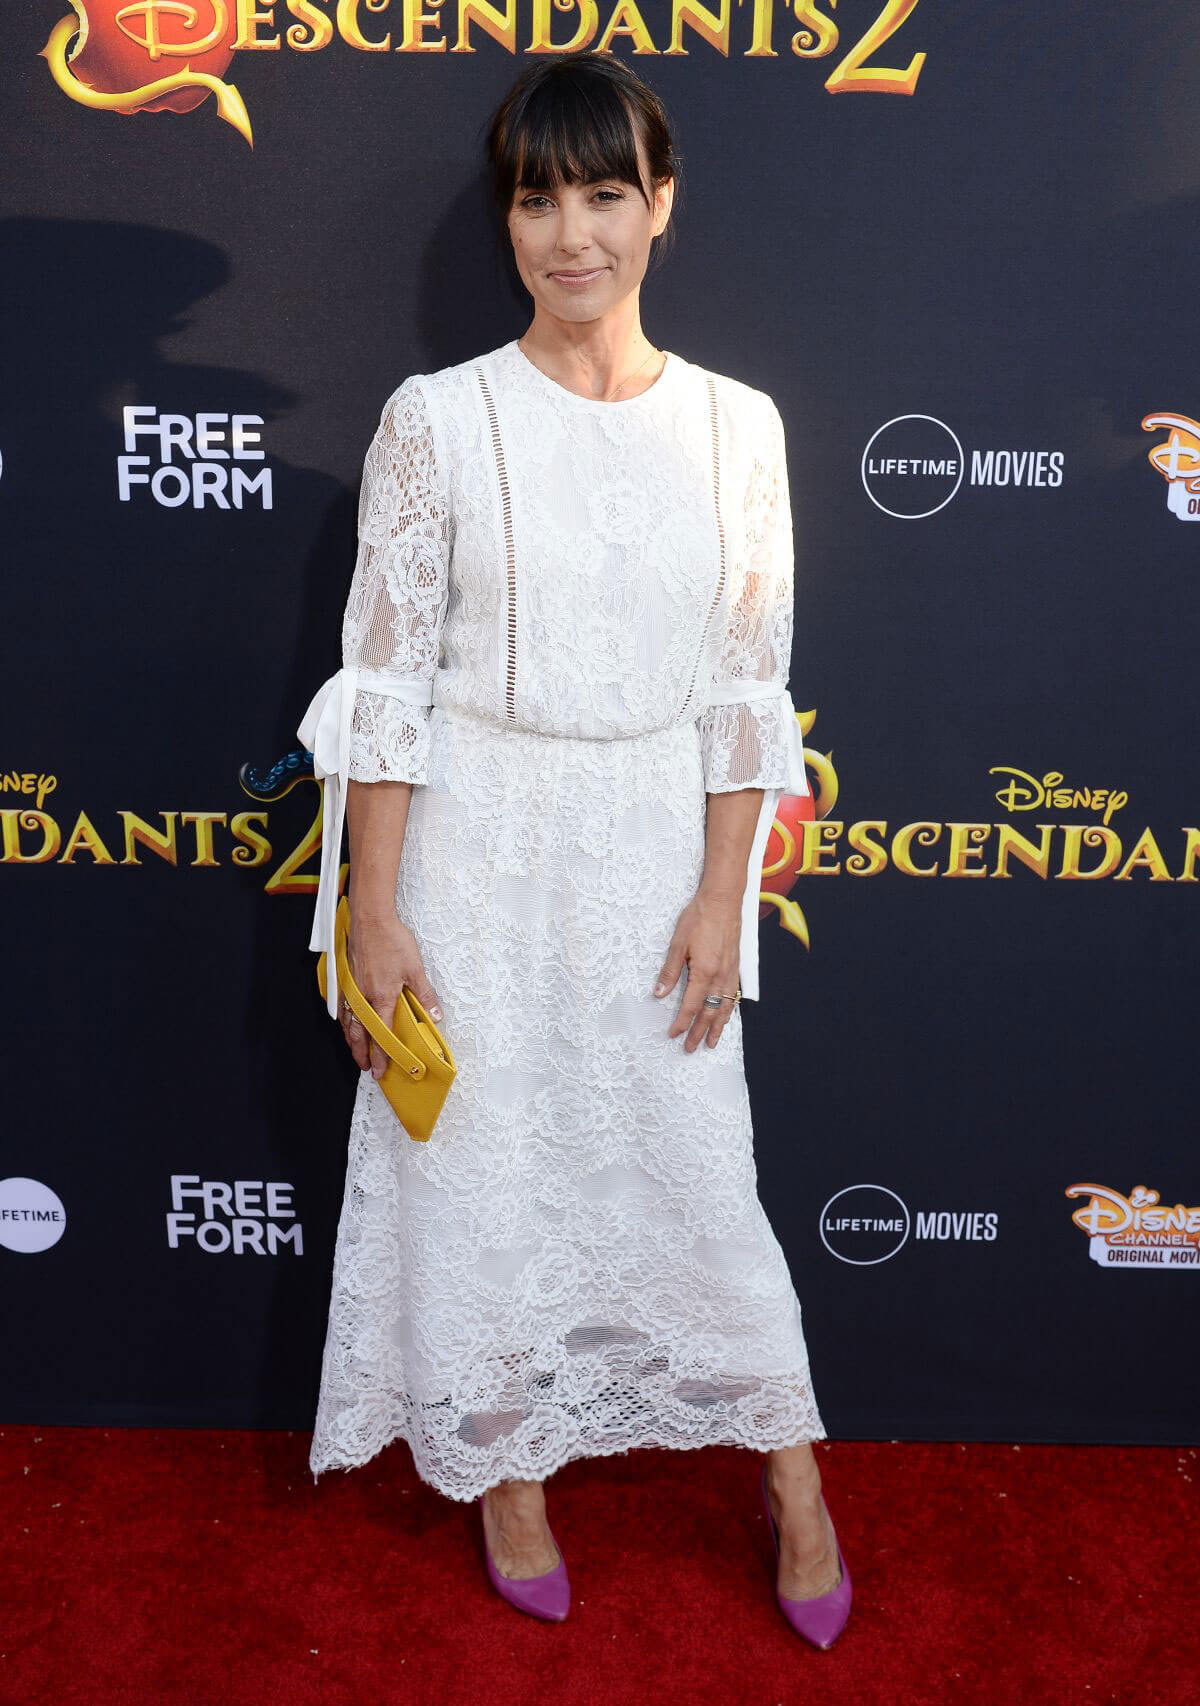 Constance Zimmer Stills at Descendants 2 Premiere in Los Angeles